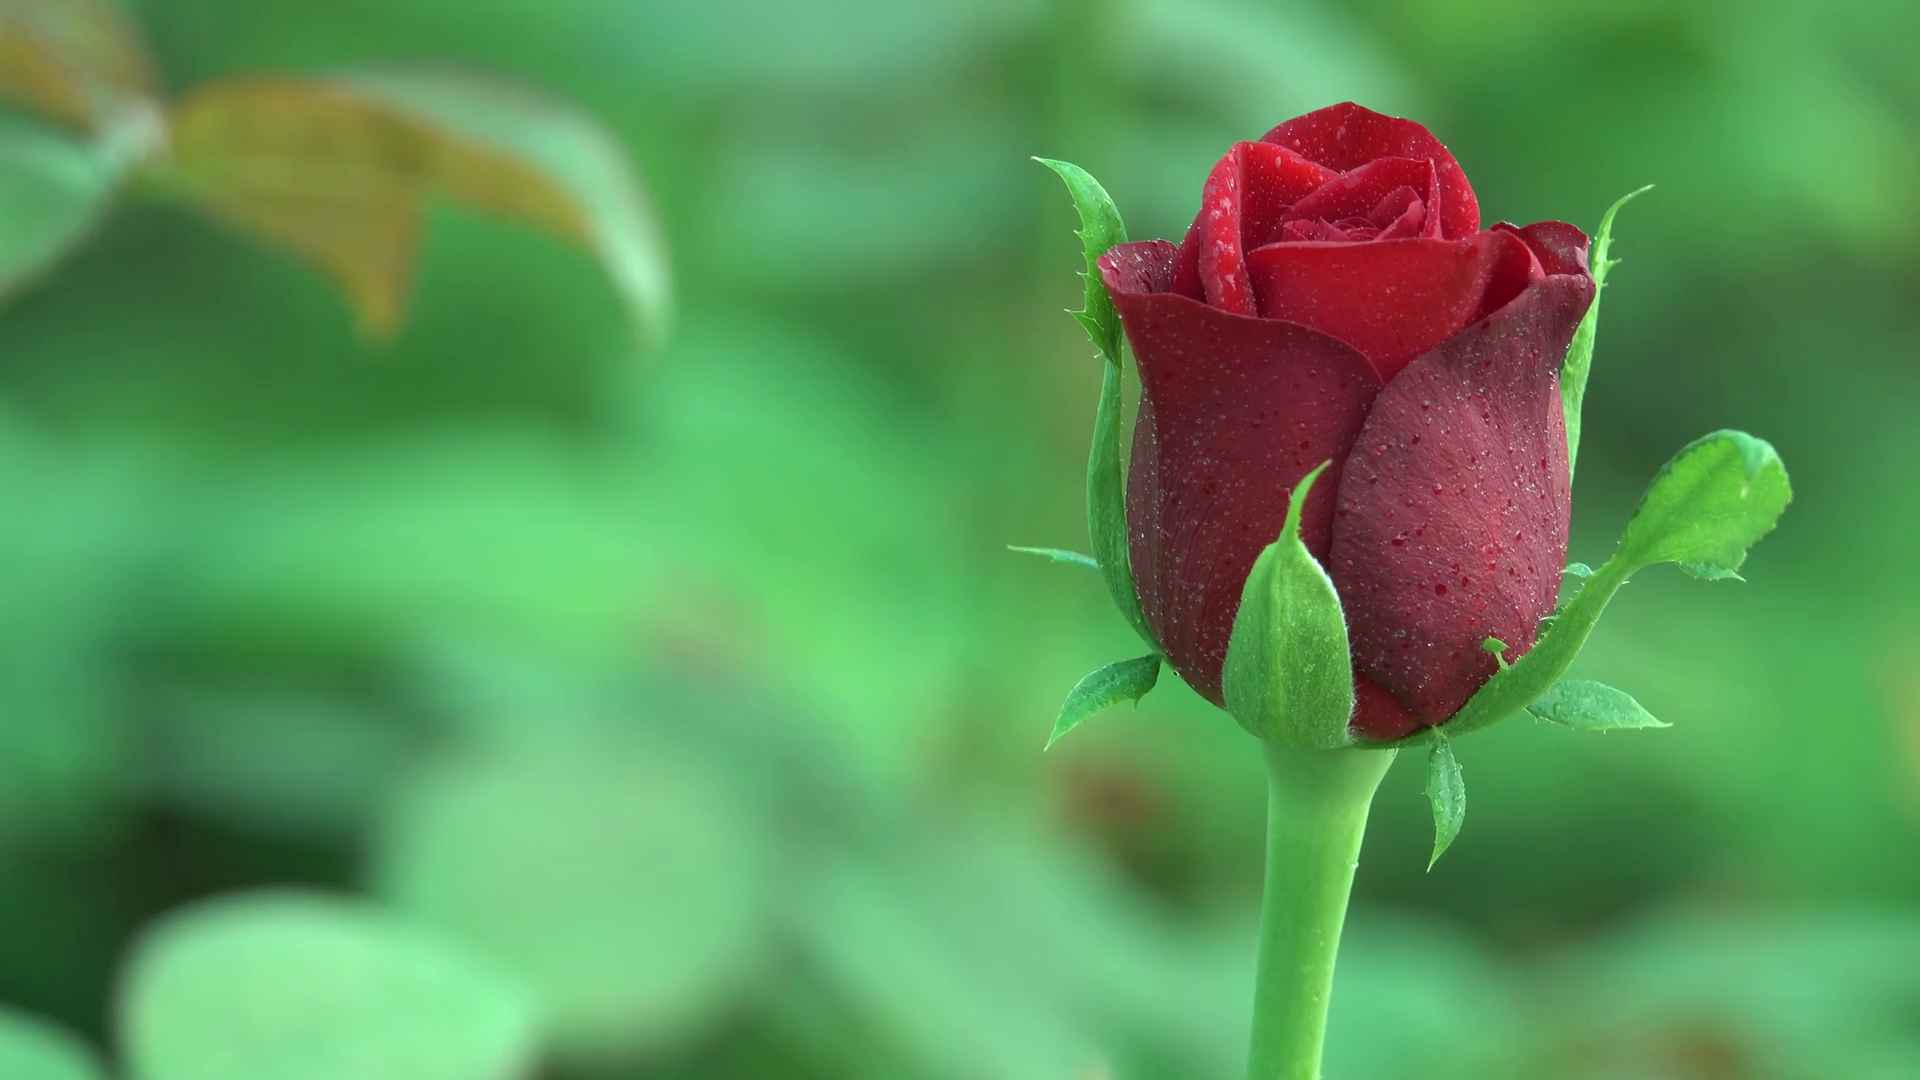 Stunning Pink Rose Flower Bud with Water Drops 4K Nature Background ...